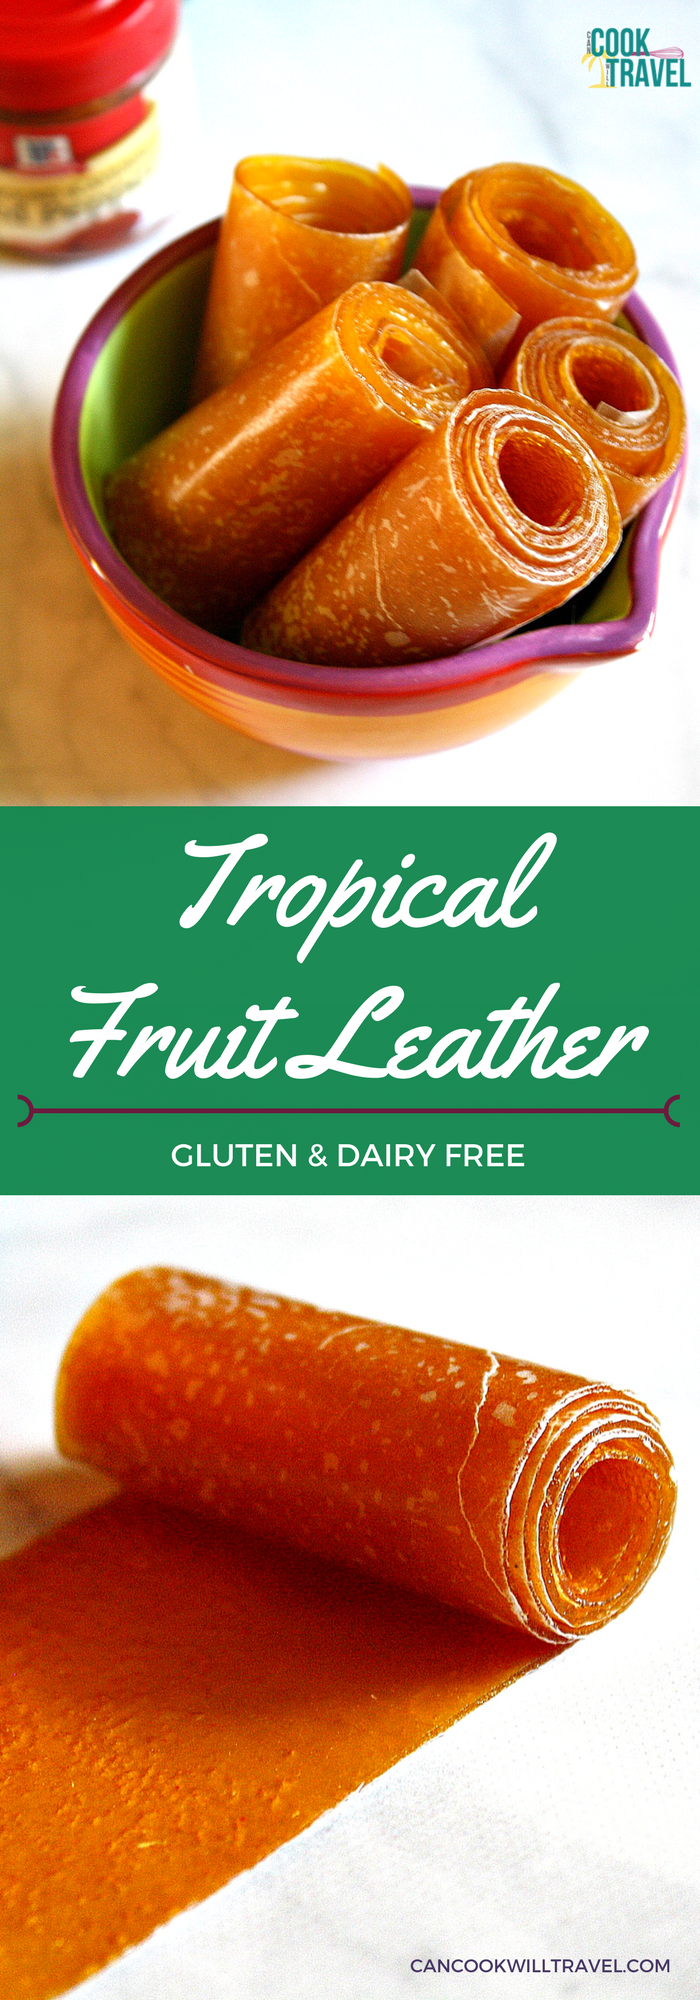 Tropical Fruit Leather_Collage1